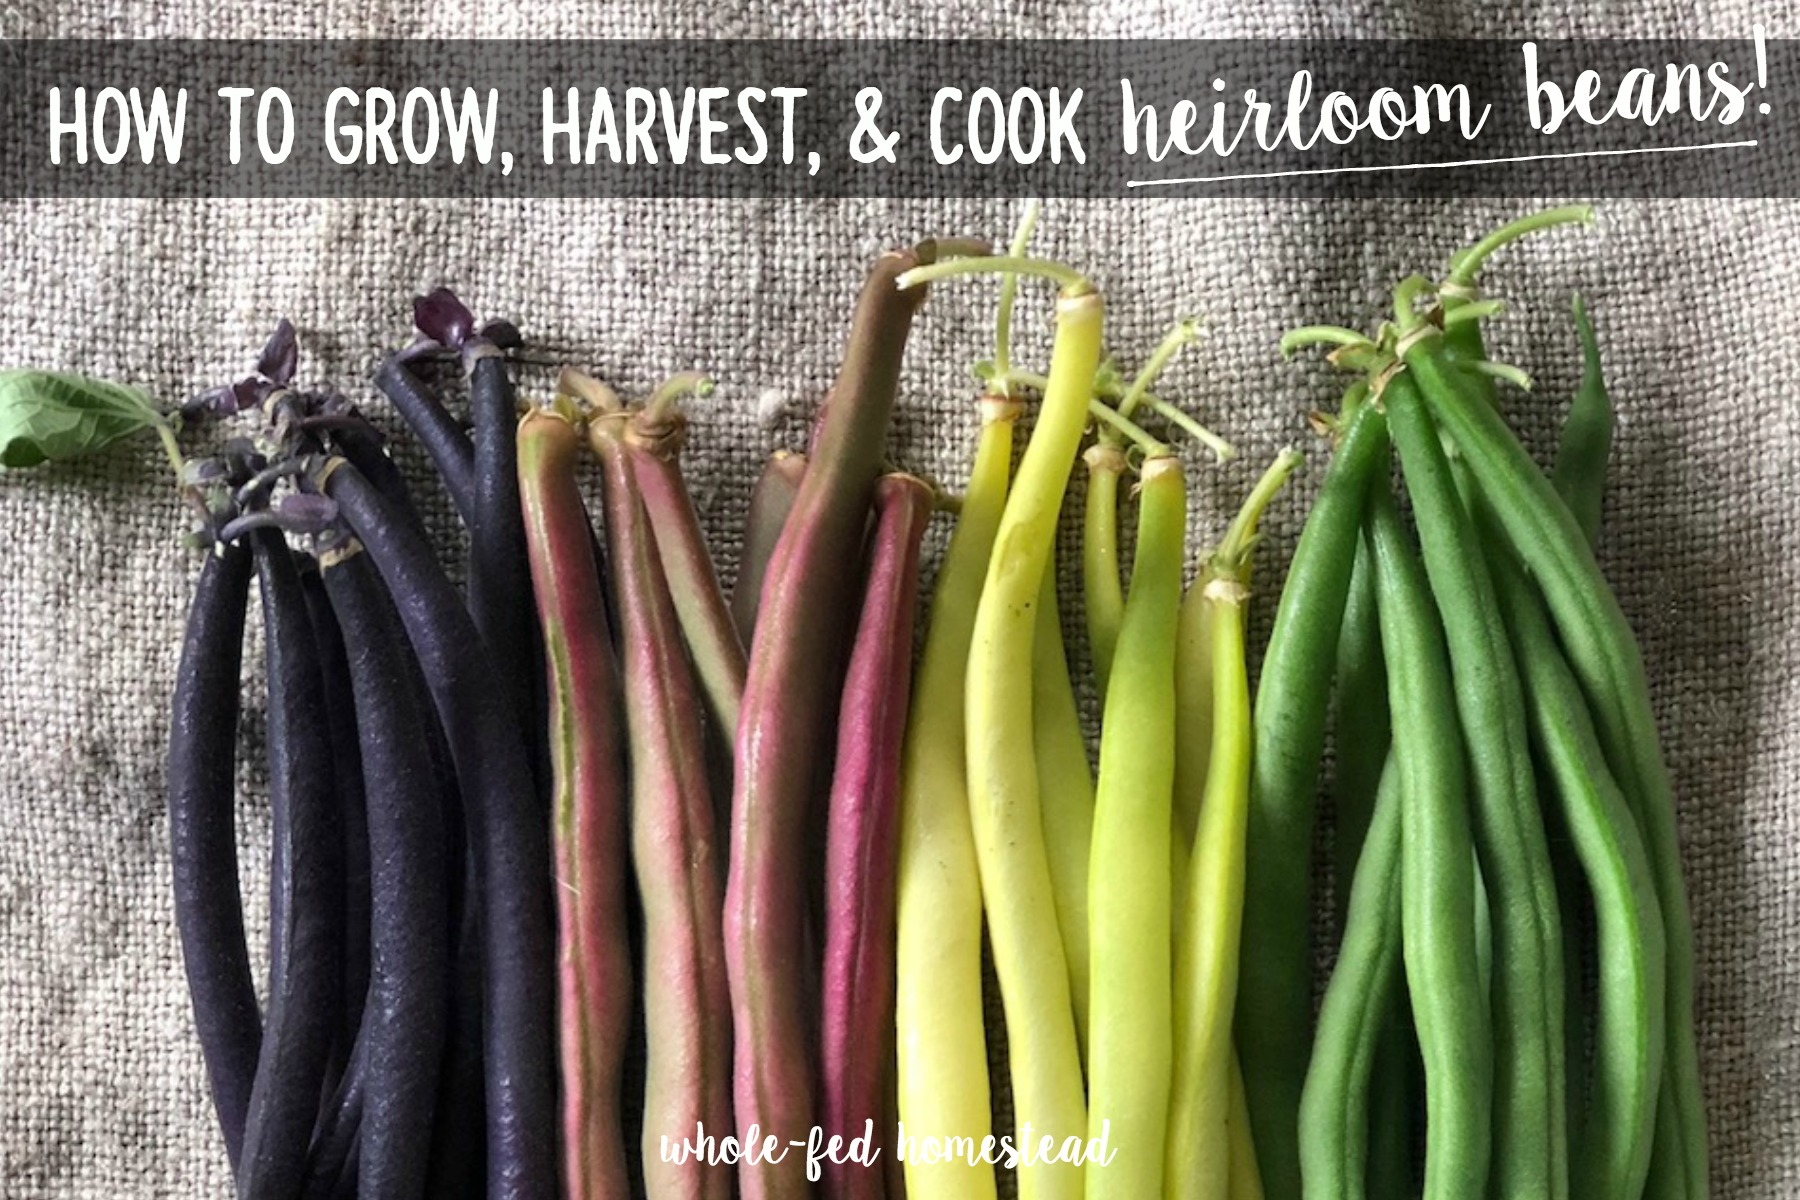 How to Grow, Harvest & Cook Heirloom Beans + My Favorite Snap & Dried Bean Varieties!